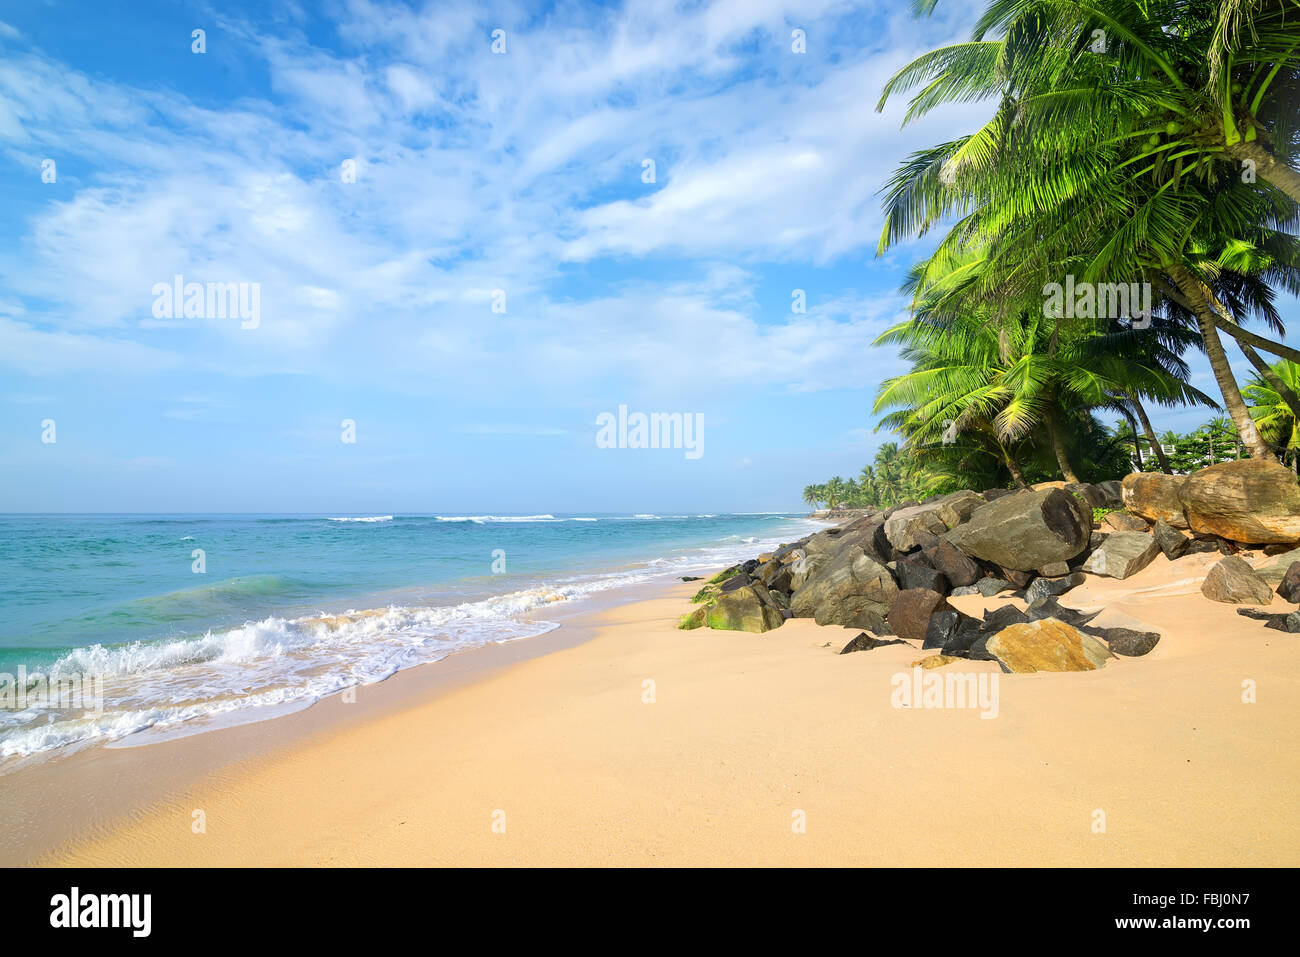 Stones and palm trees on a sandy beach of Gala in Sri Lanka - Stock Image